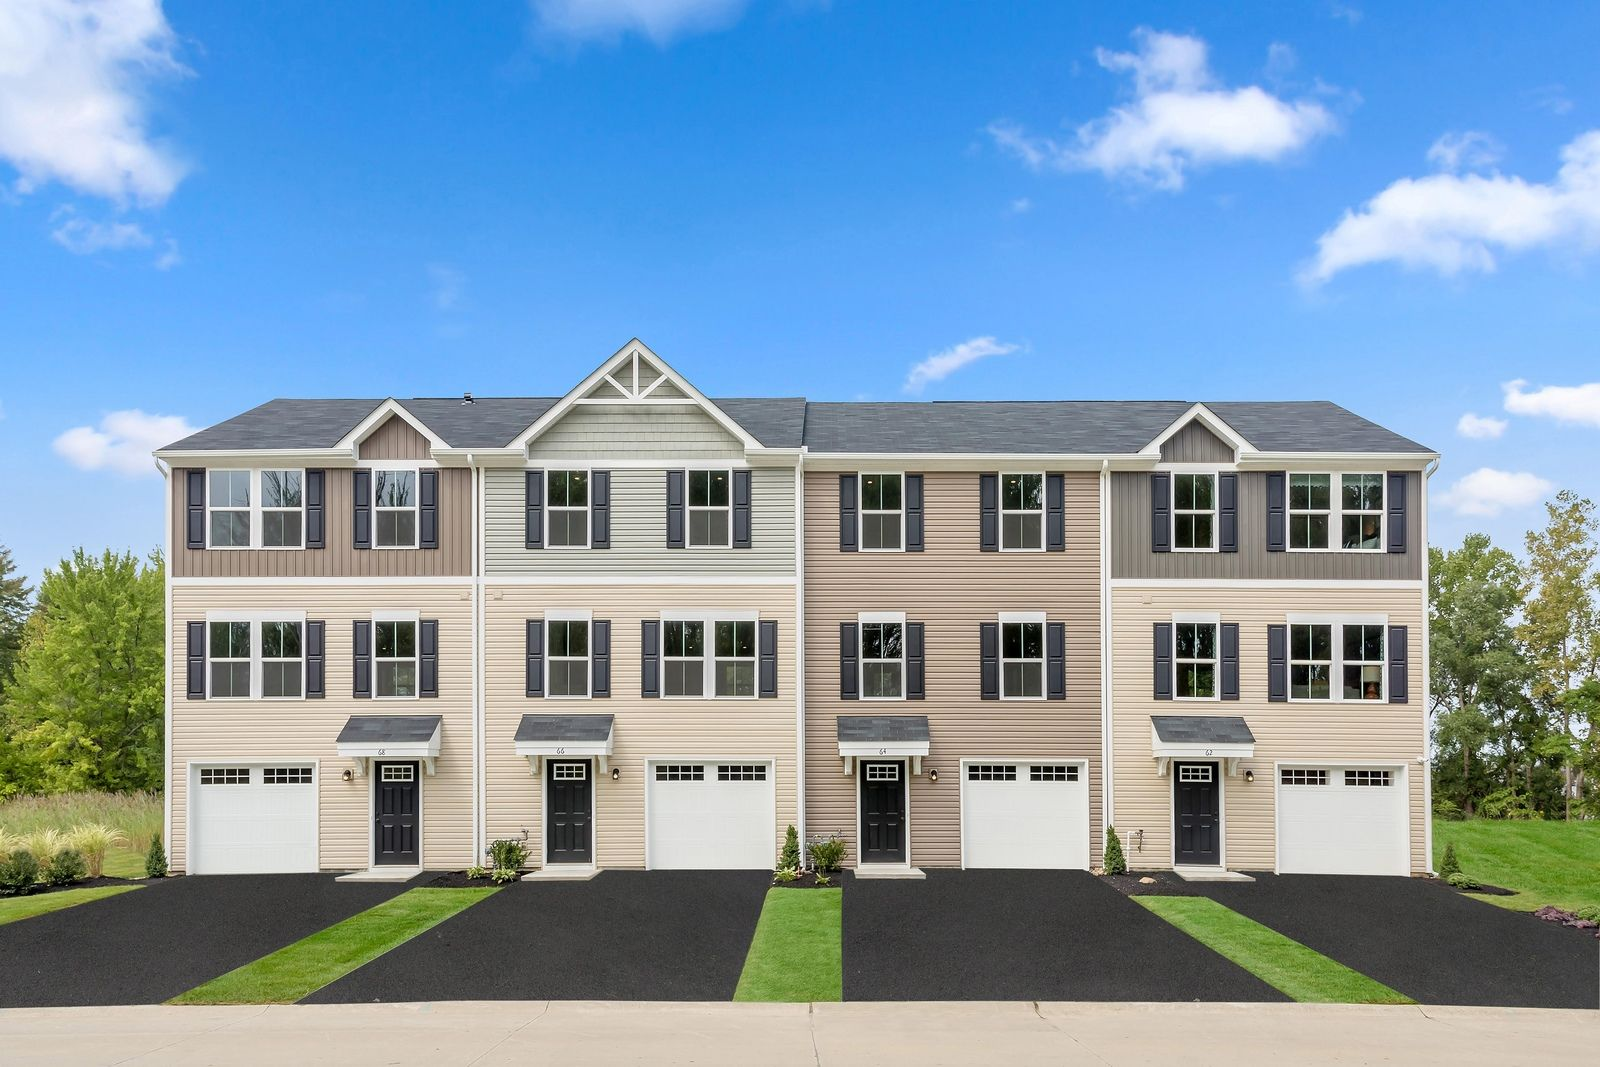 STOP MAKING YOUR LANDLORD RICH:Instead of throwing away thousands in rent, start investing in your future with a new townhome of your own!Click here to visit our brand new model today!